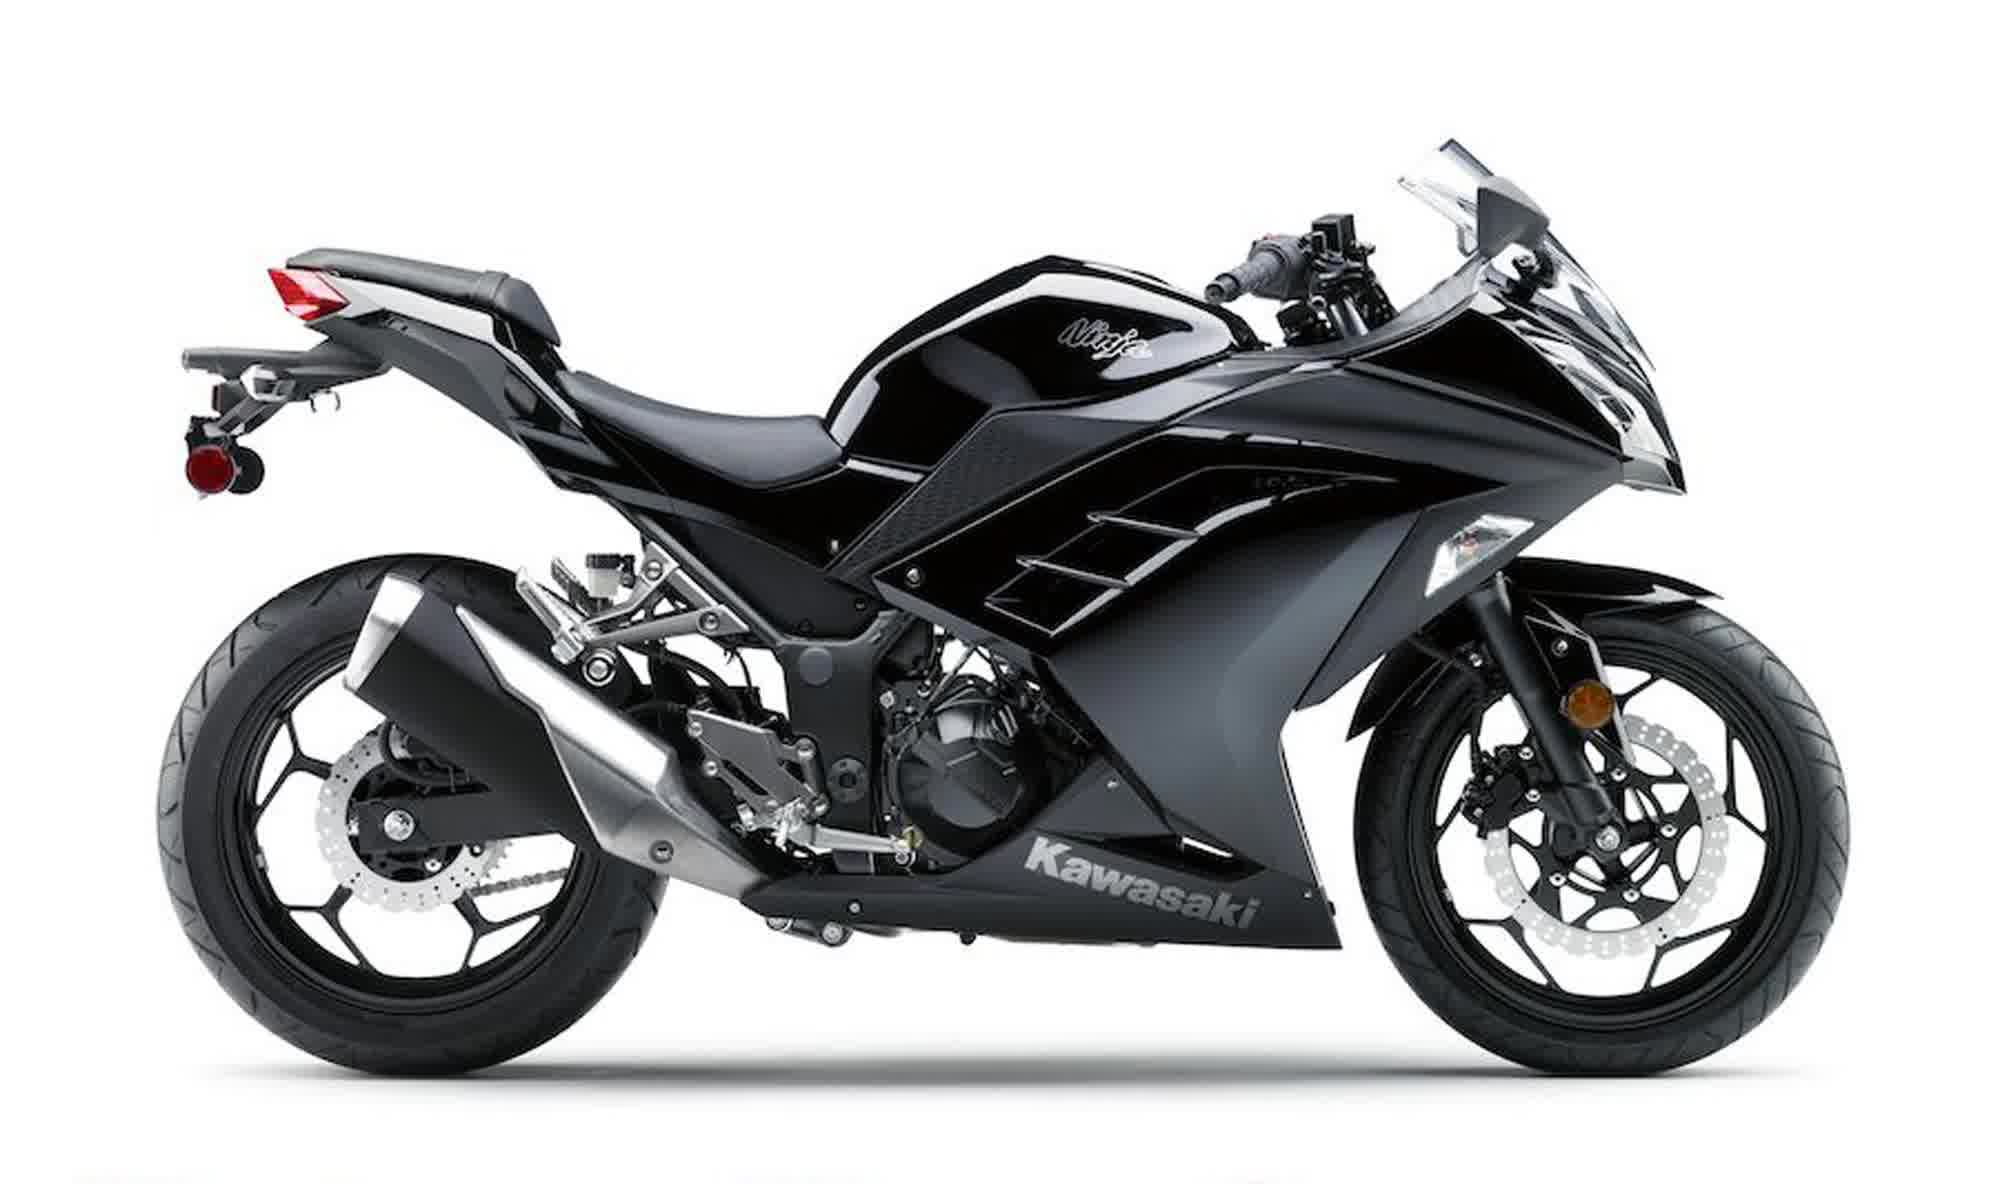 2013-Kawasaki-Ninja-300-Black-Edition